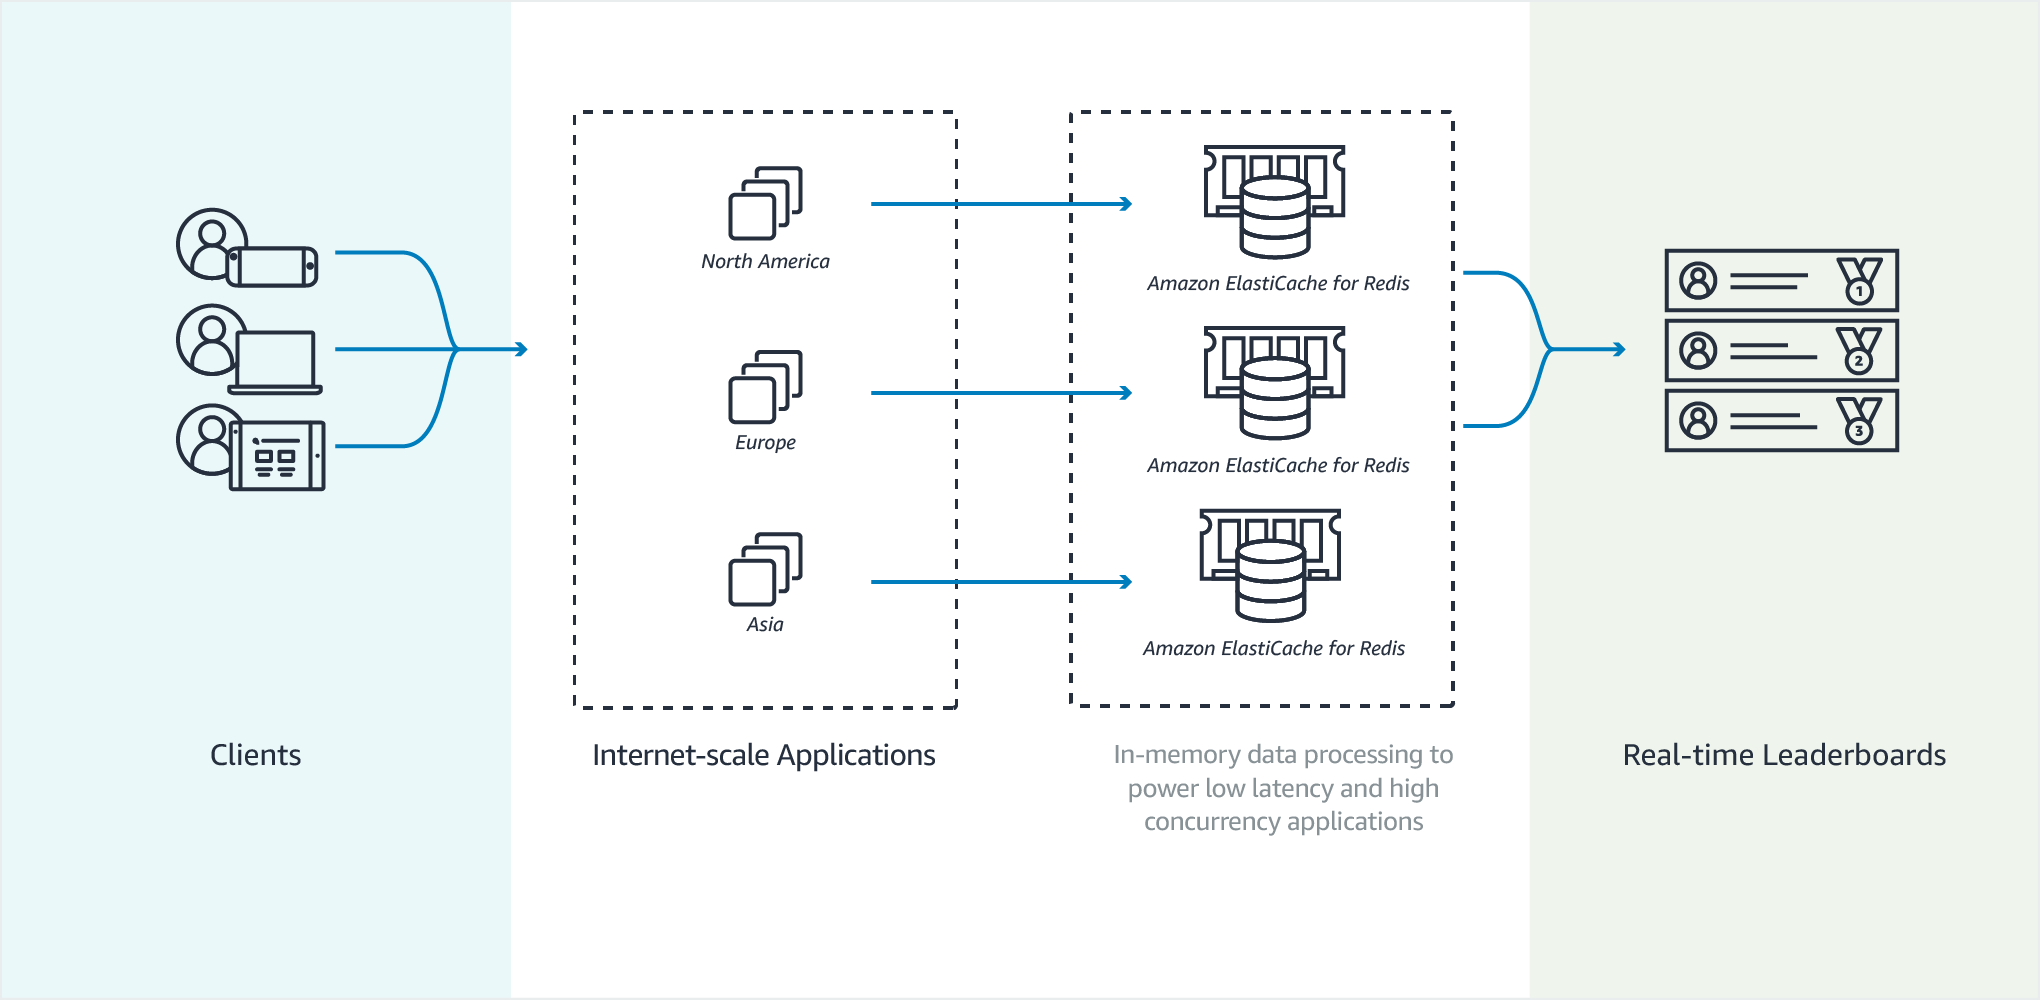 Use Cases and How ElastiCache Can Help - Amazon ElastiCache for Redis